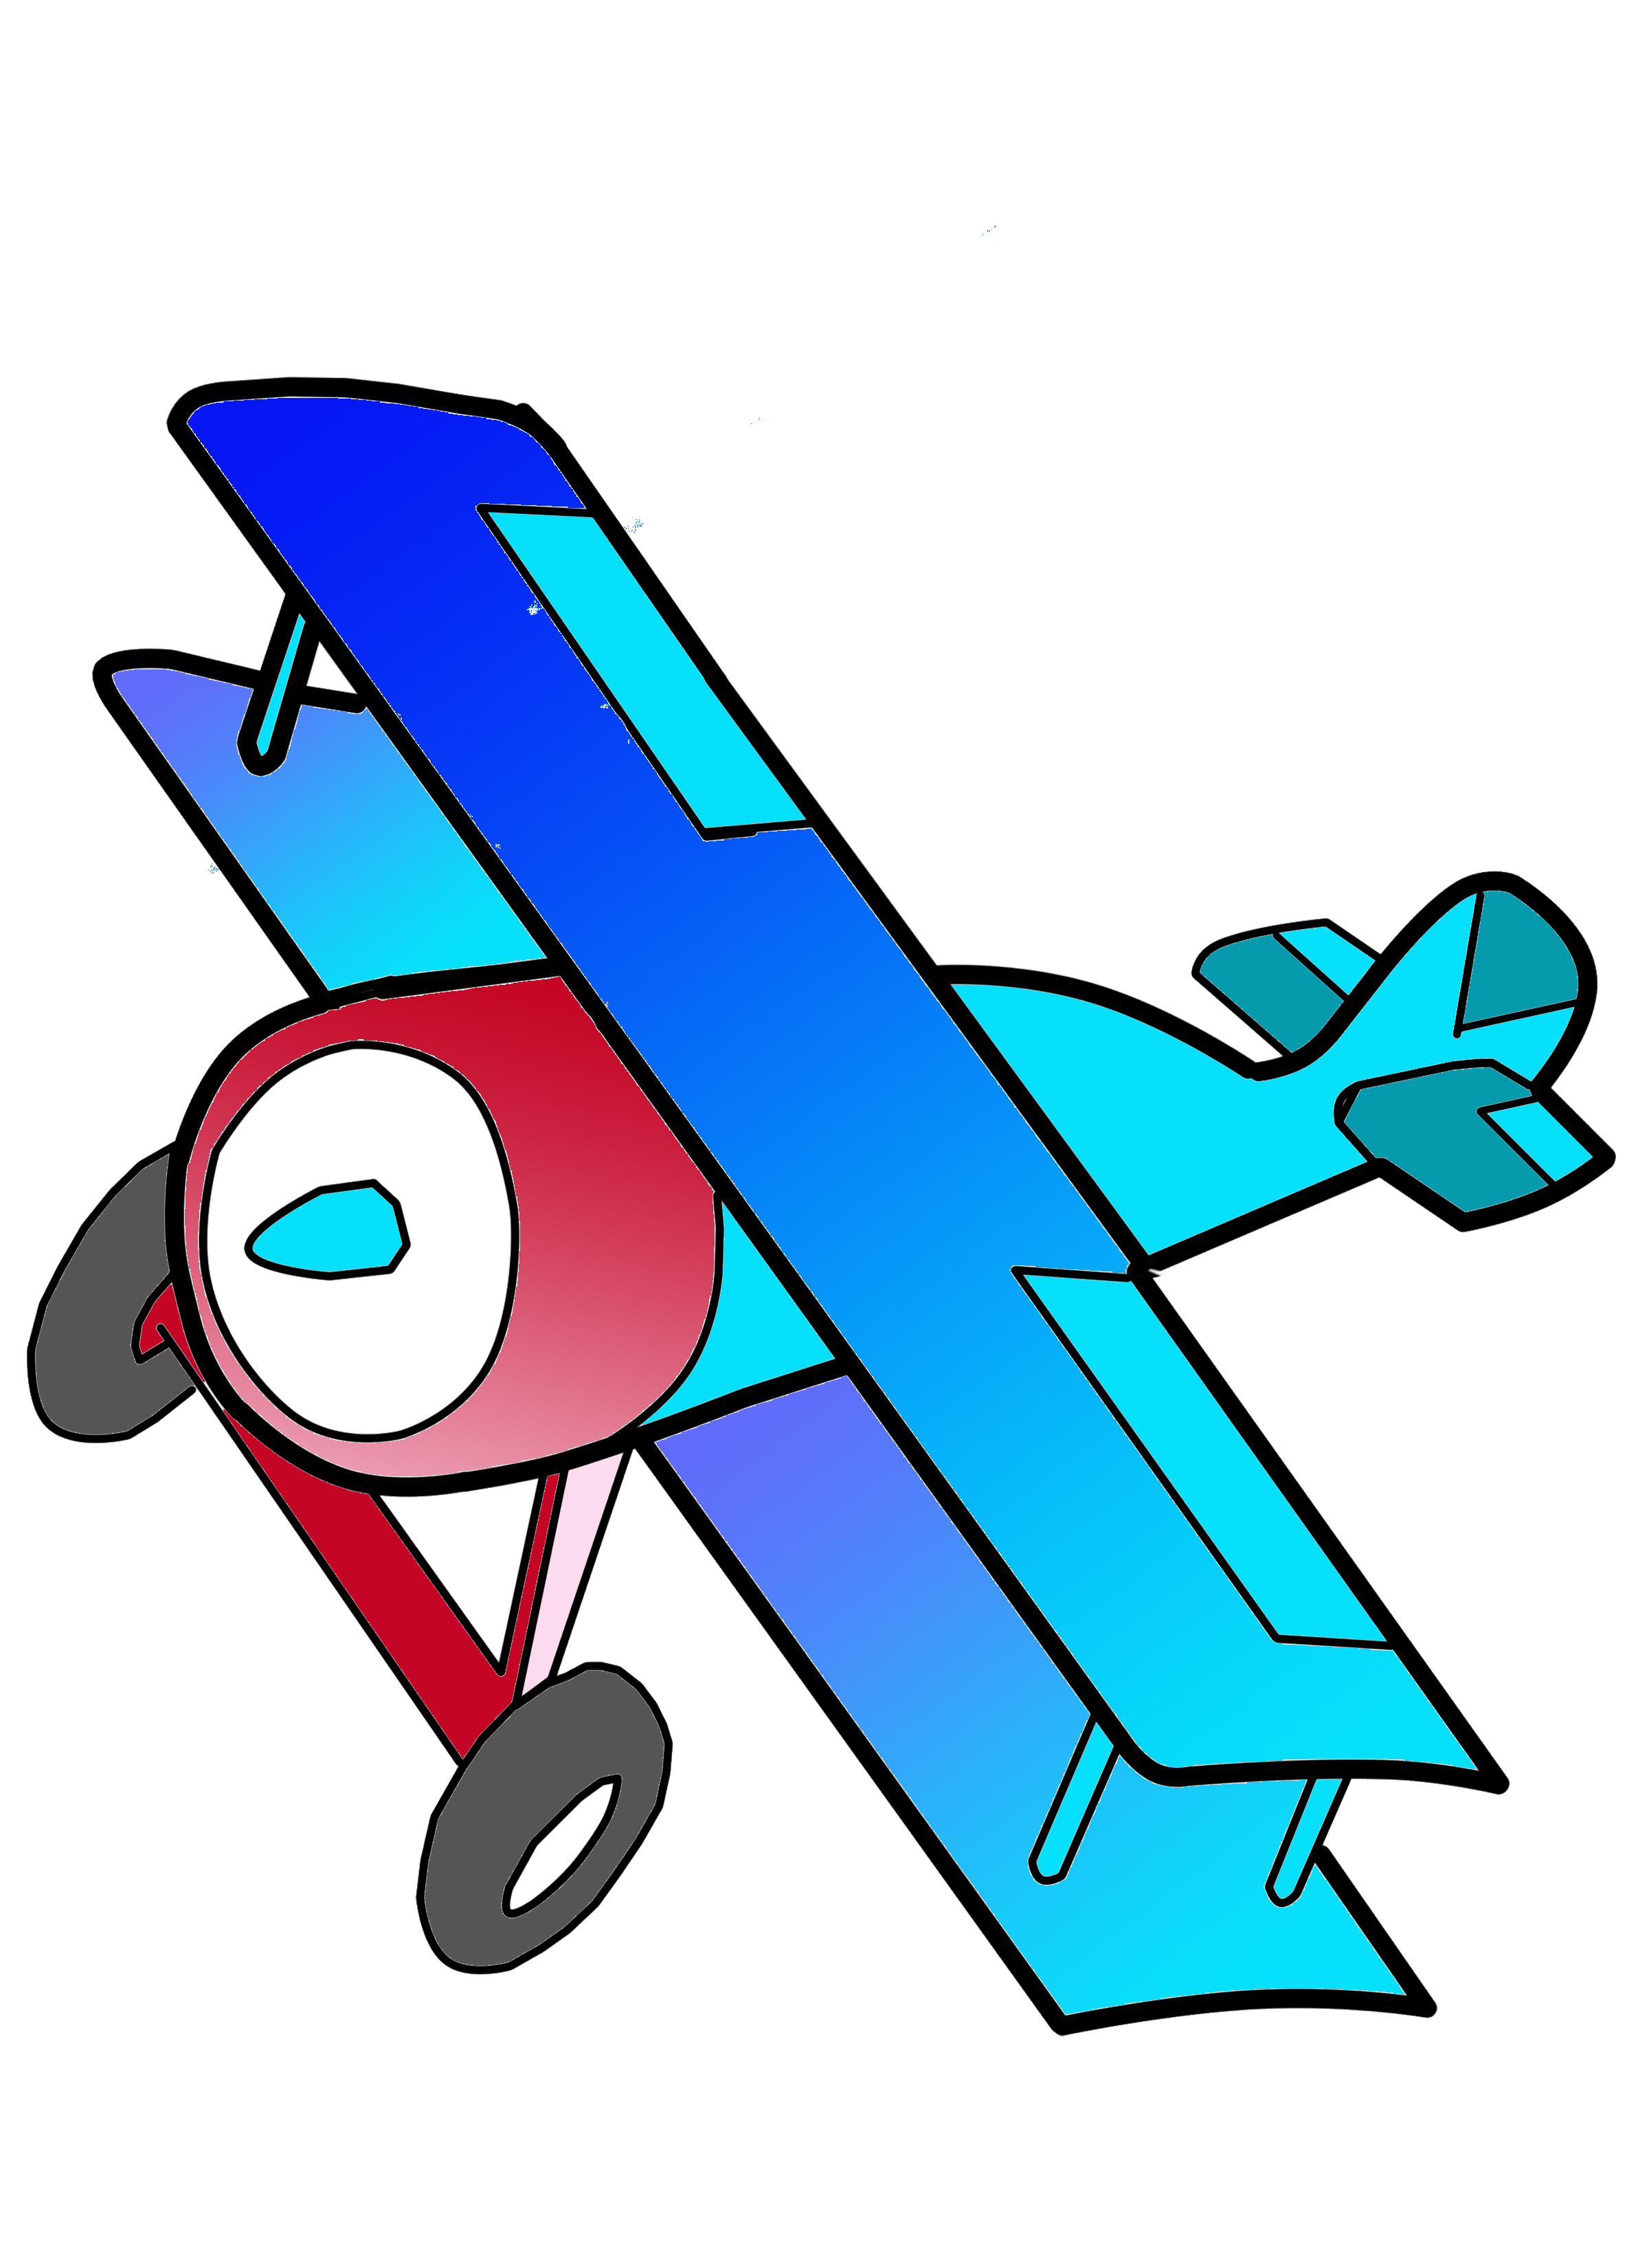 Biplane Free Images At Clker  - Biplane Clipart